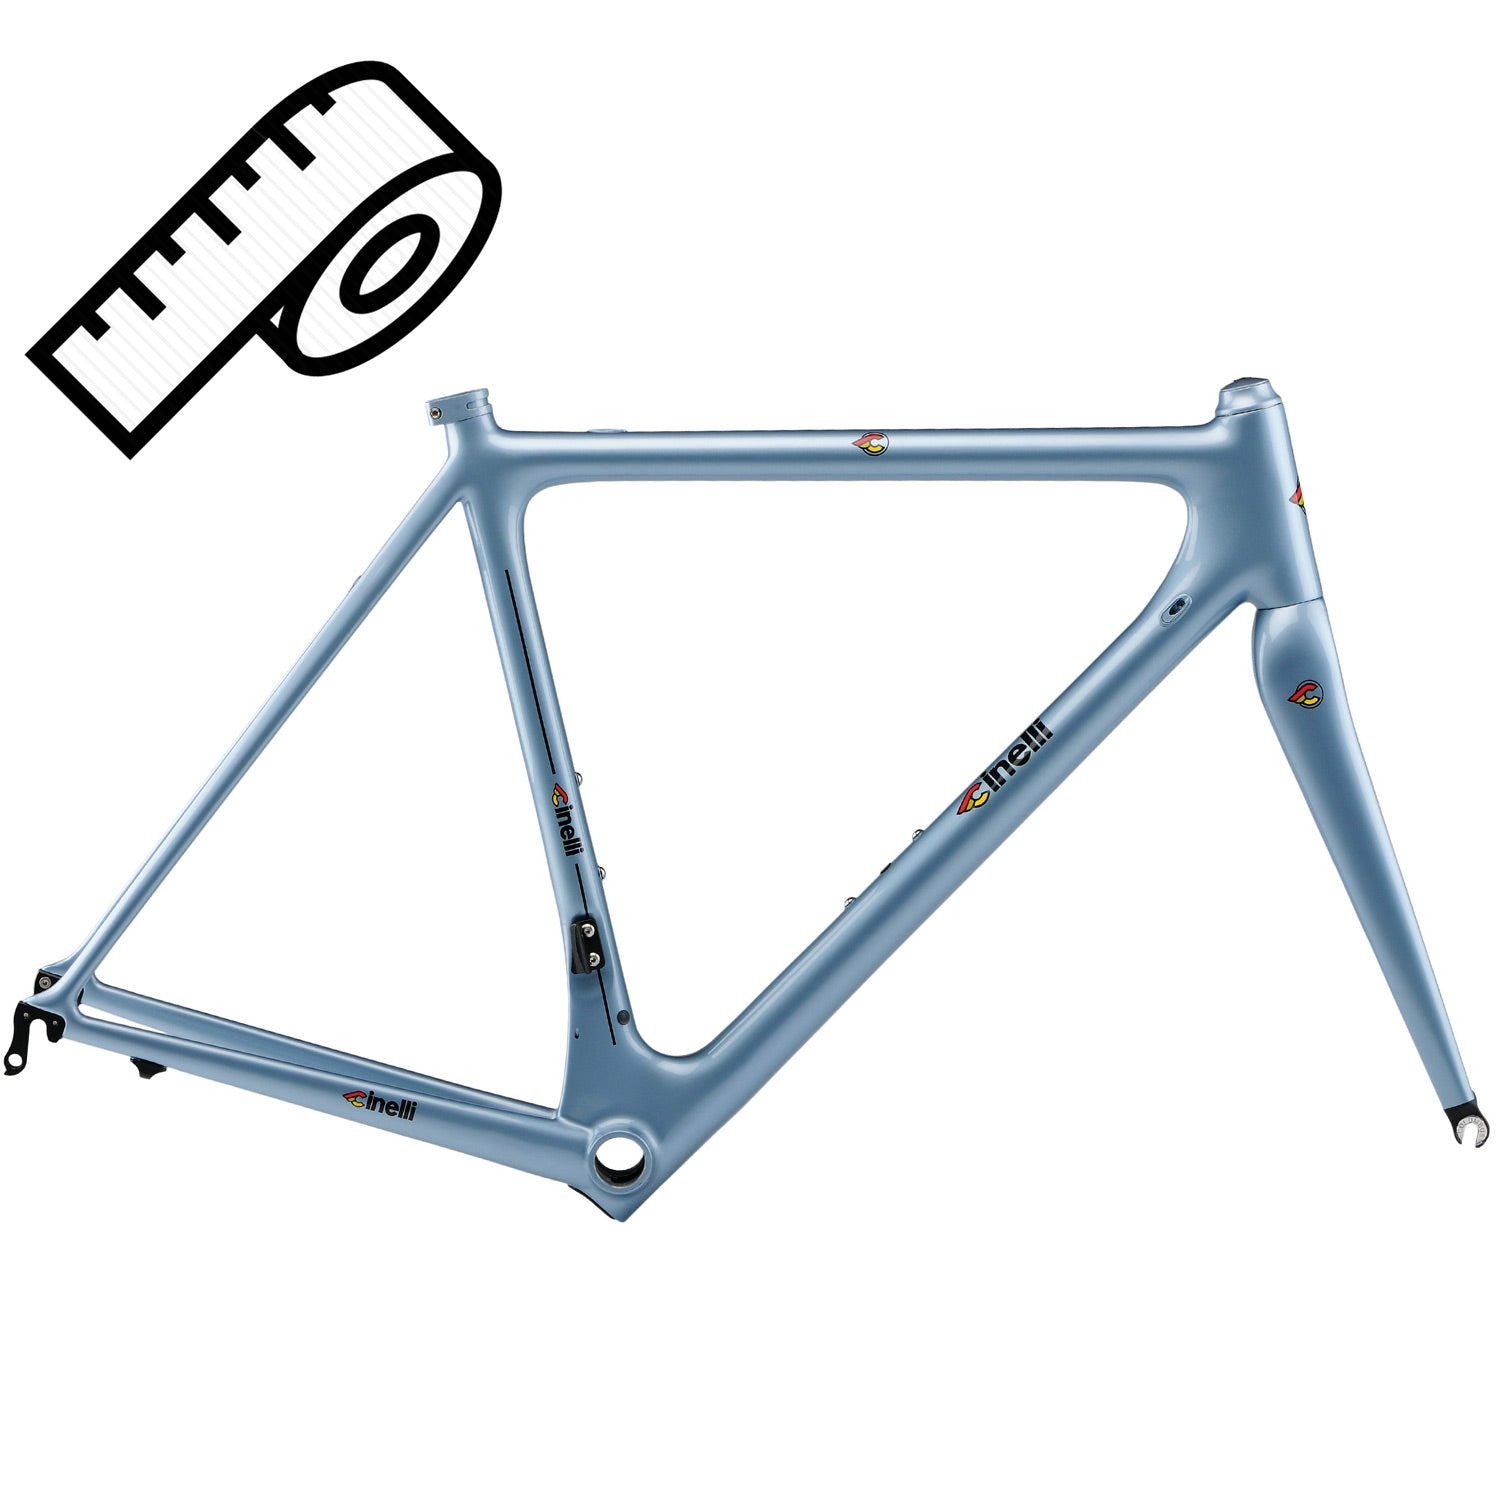 Cinelli Laser Mia Custom Geometry Frameset